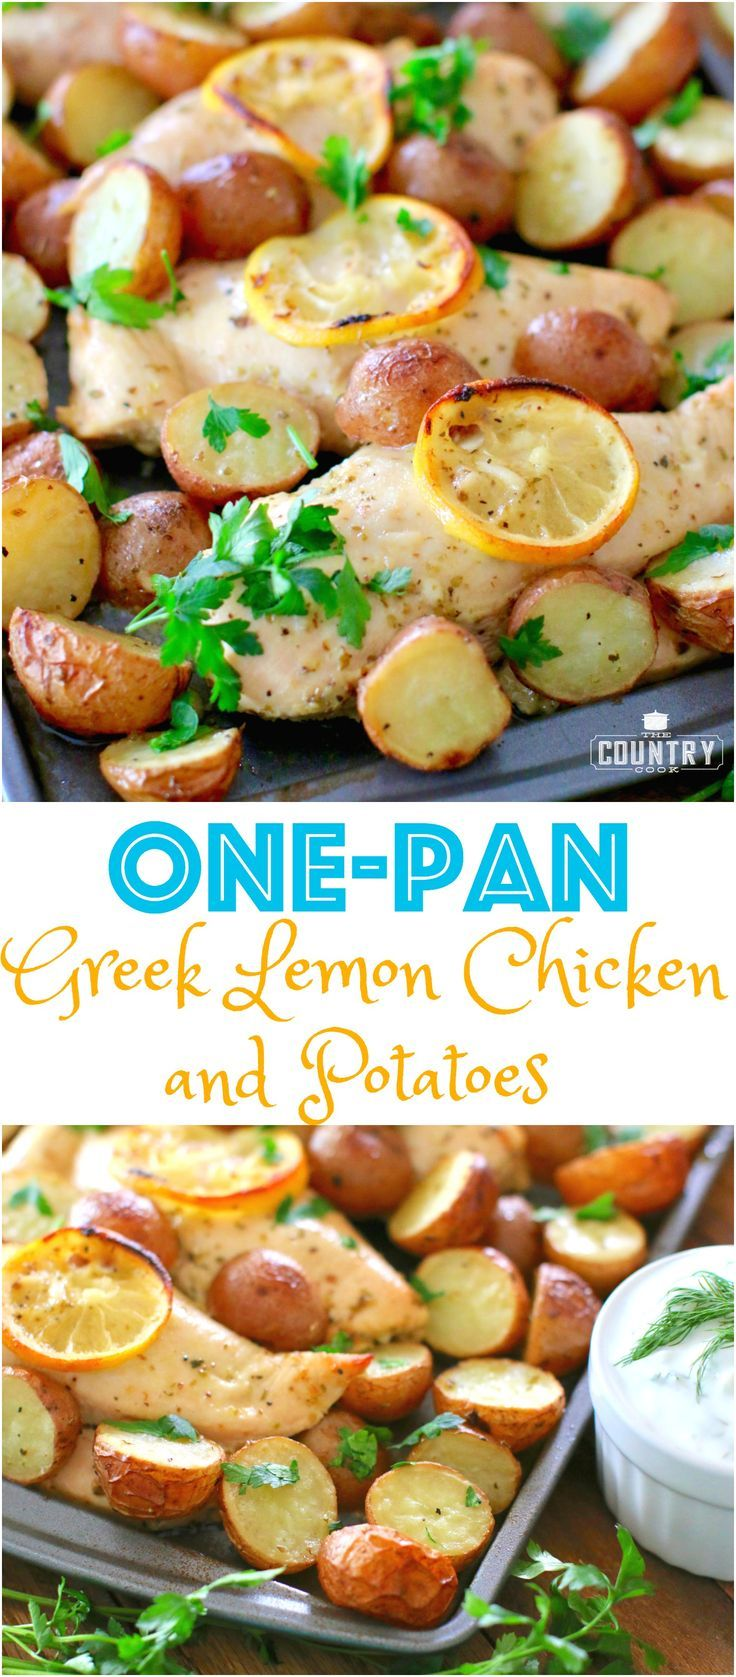 One Pan Greek Lemon Chicken with Little Potatoes and Tzaziki Sauce recipe from The Country Cook